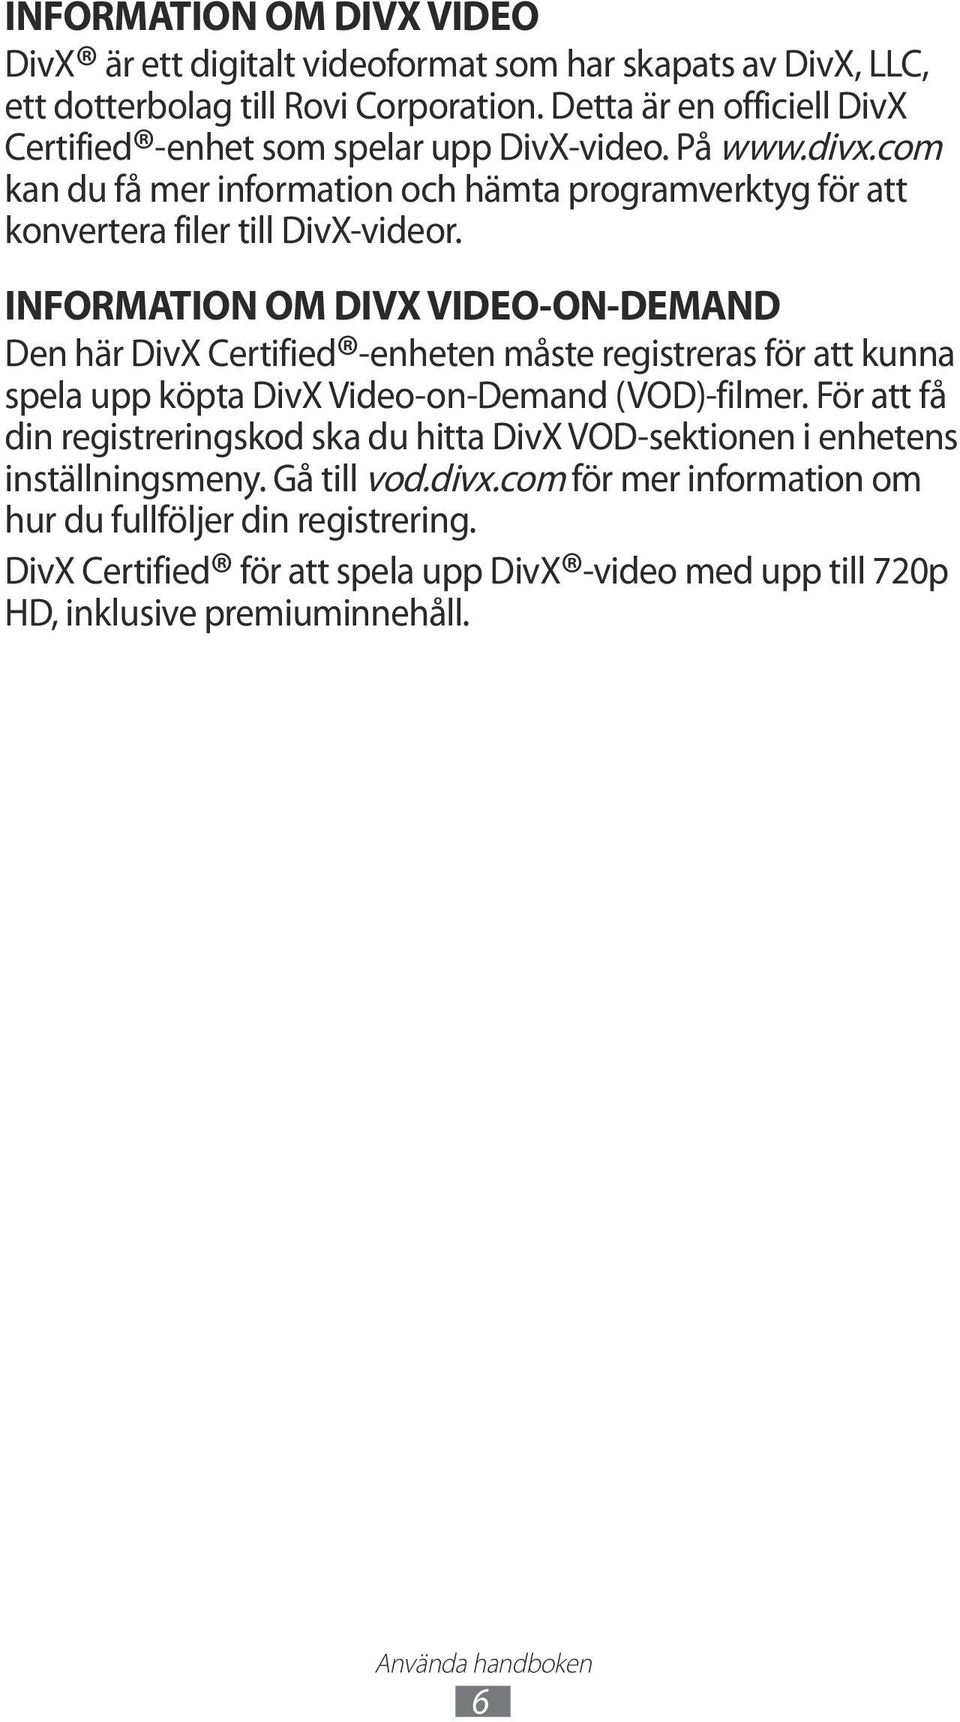 INFORMATION OM DIVX VIDEO-ON-DEMAND Den här DivX Certified -enheten måste registreras för att kunna spela upp köpta DivX Video-on-Demand (VOD)-filmer.